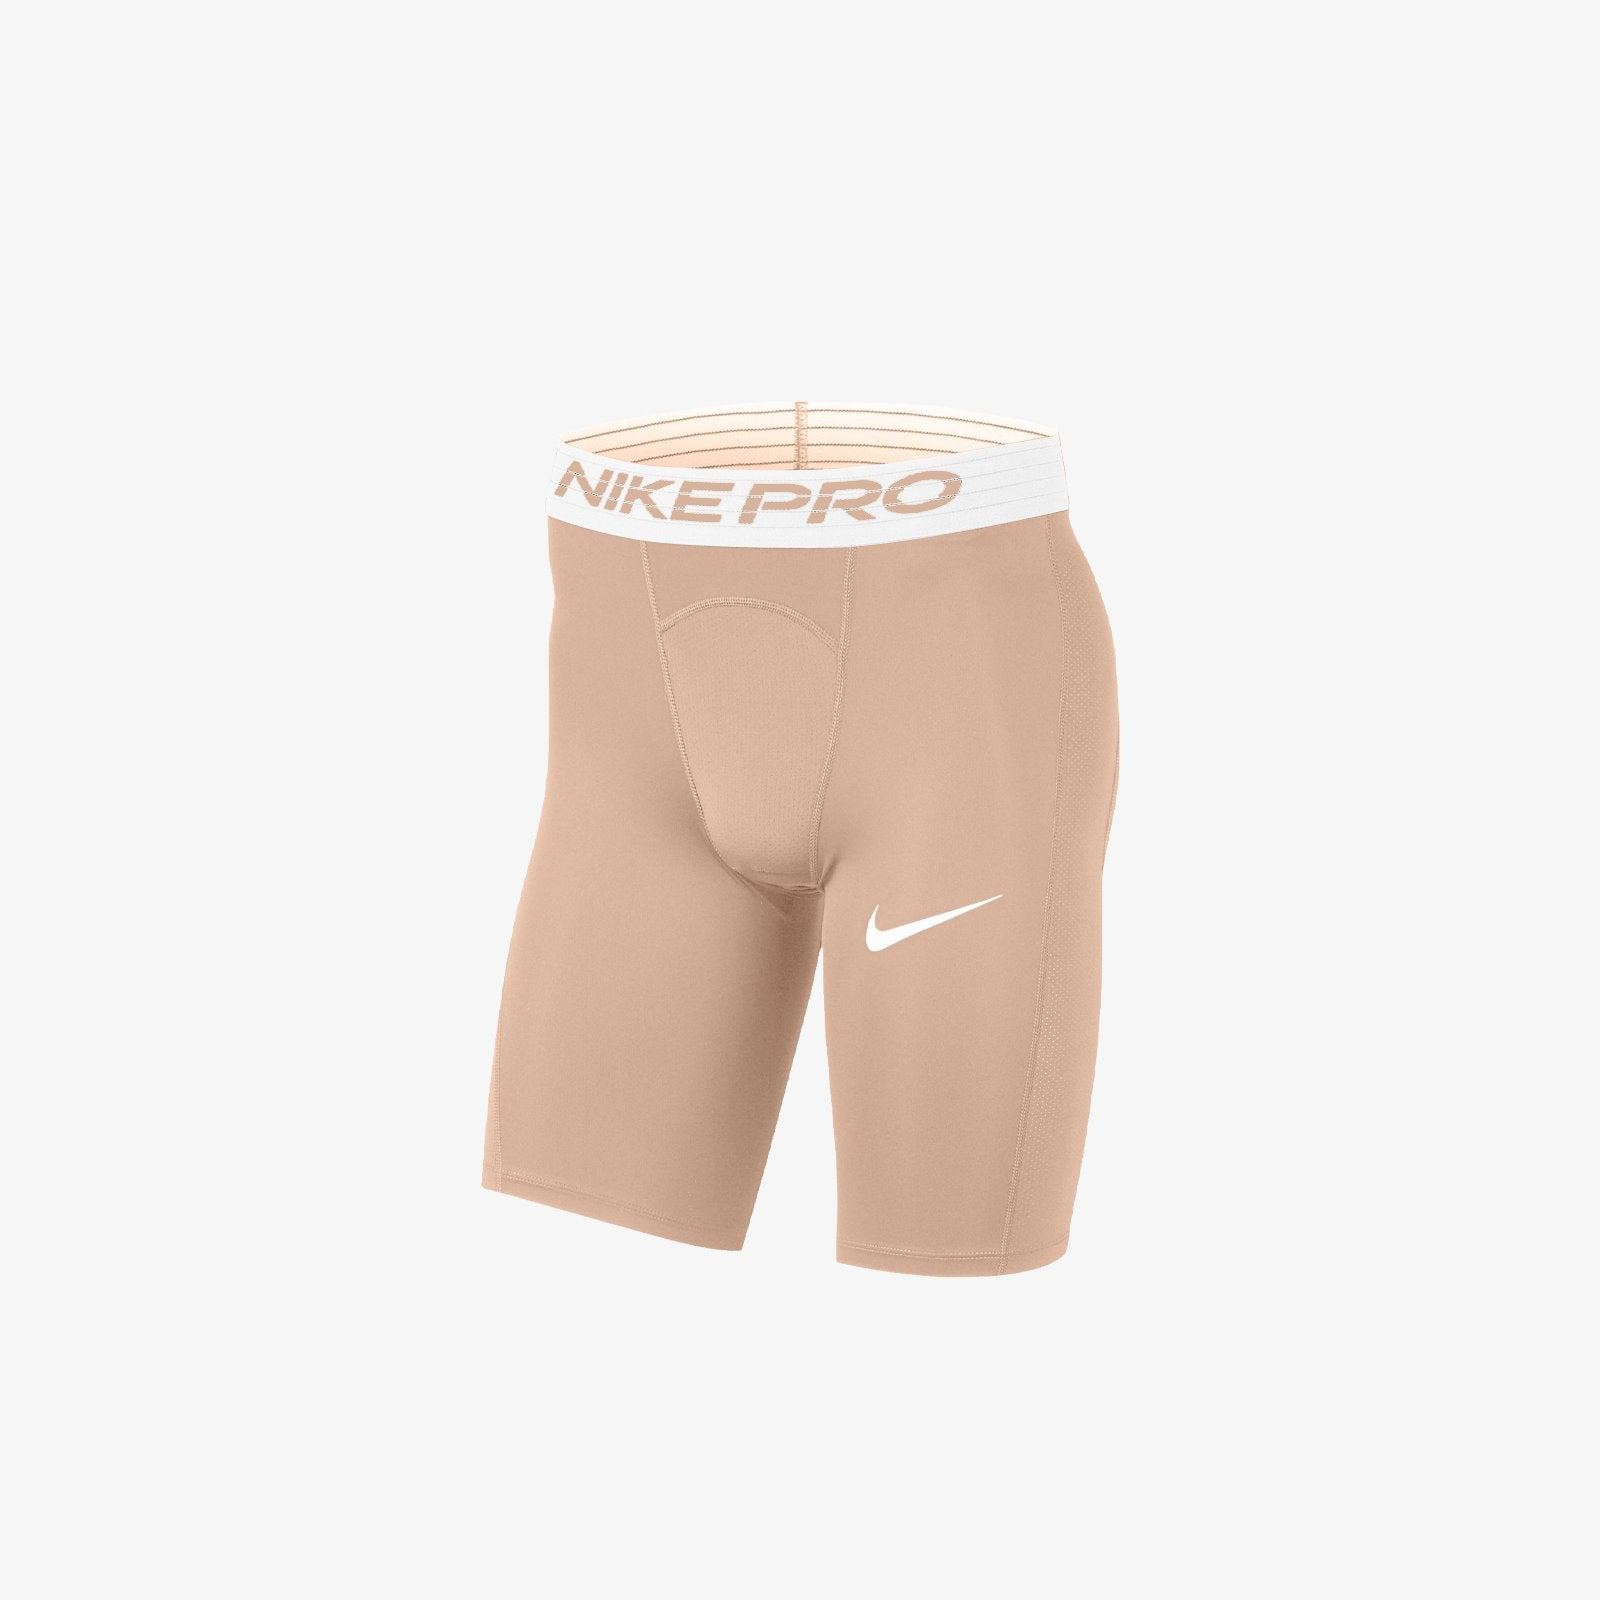 NIKE MEN PRO SHORT - SHIMMER WHITE